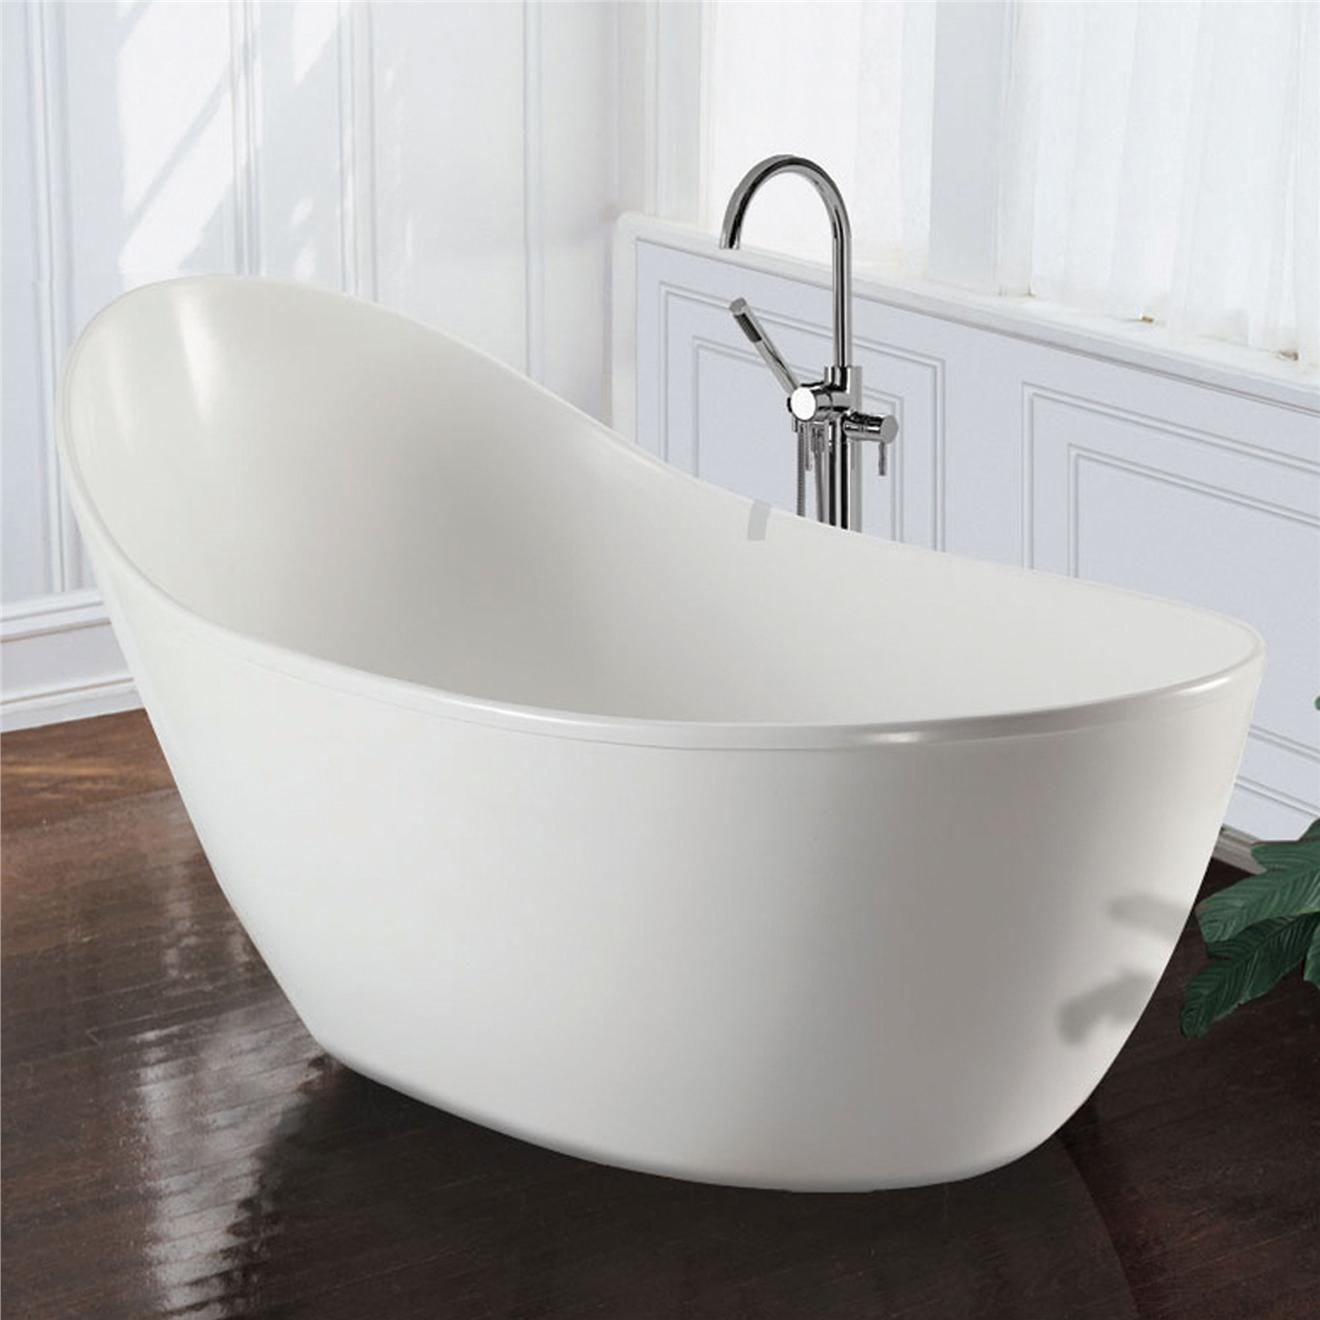 Superb Love The Slipper Style Soaker Tub. But Will It Look Dated In 5 Years?